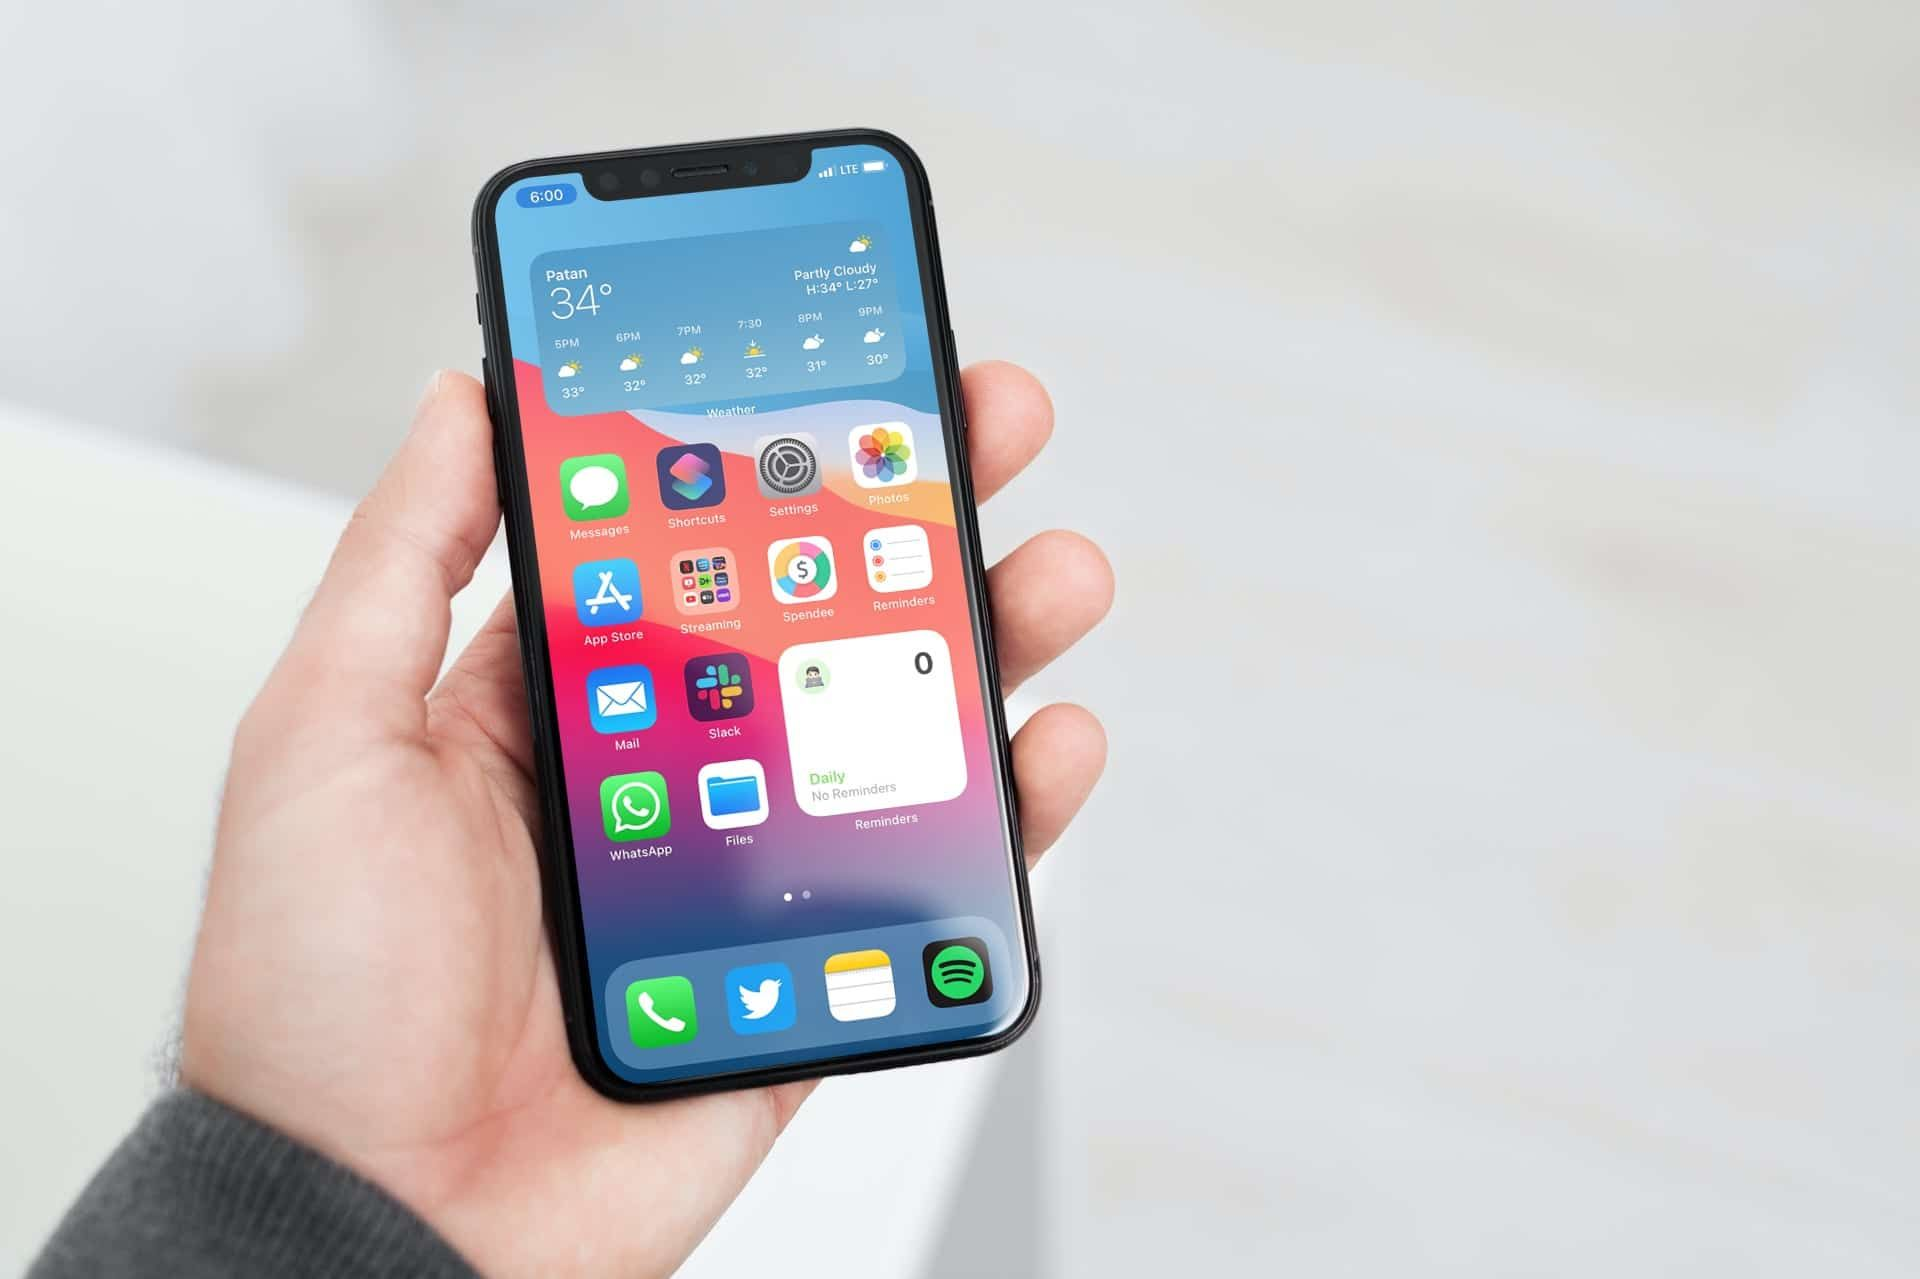 Ios 14 How To Add Remove And Customize Widgets On Iphone Iphone Homescreen Iphone Iphone Organization